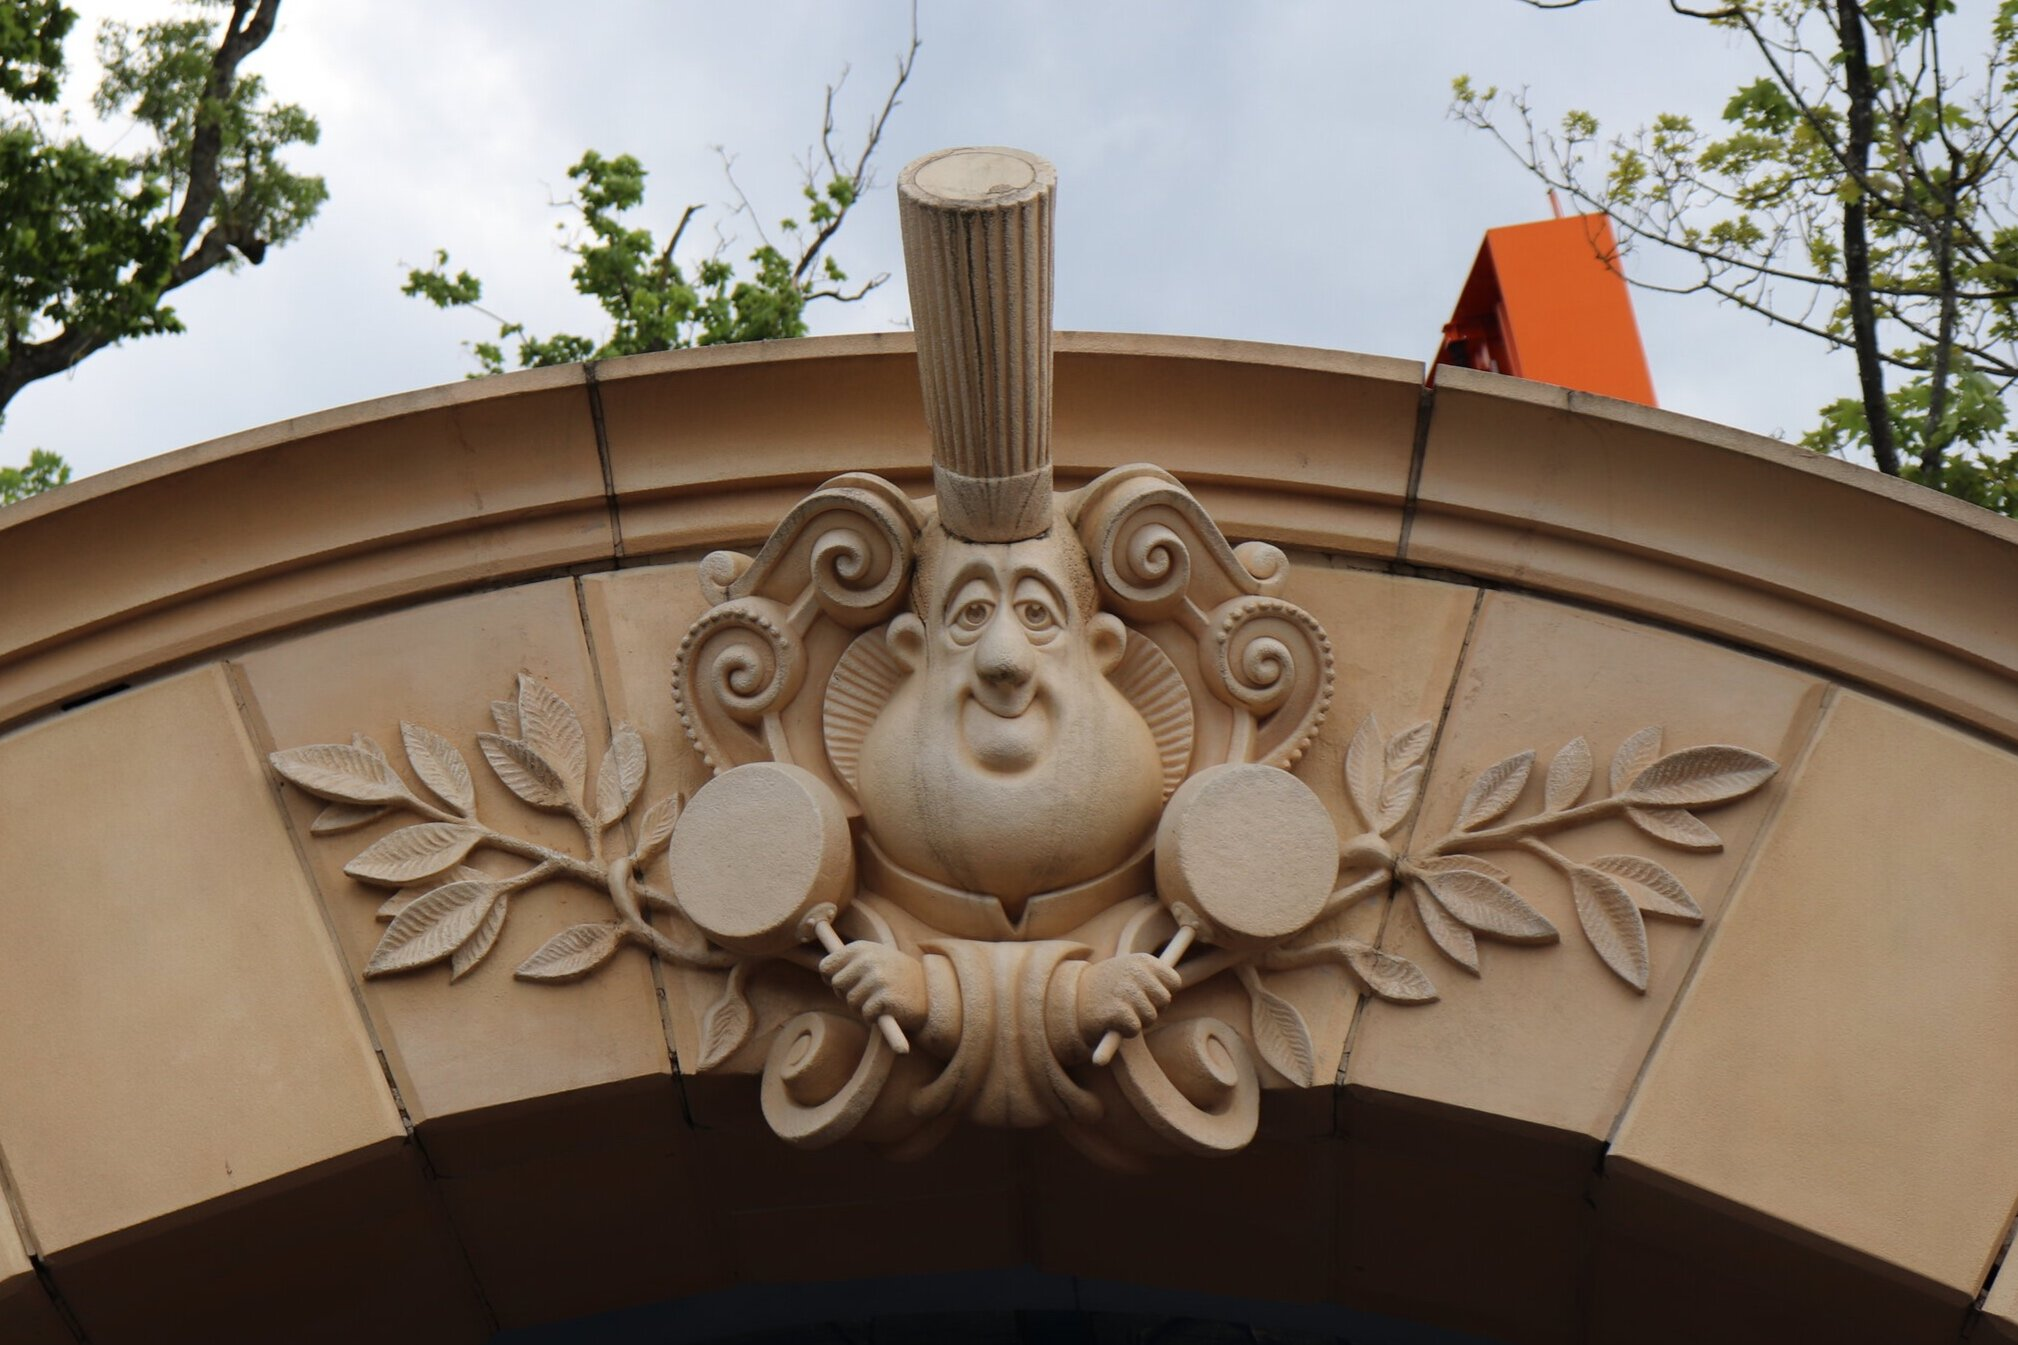 This was above a walkway.